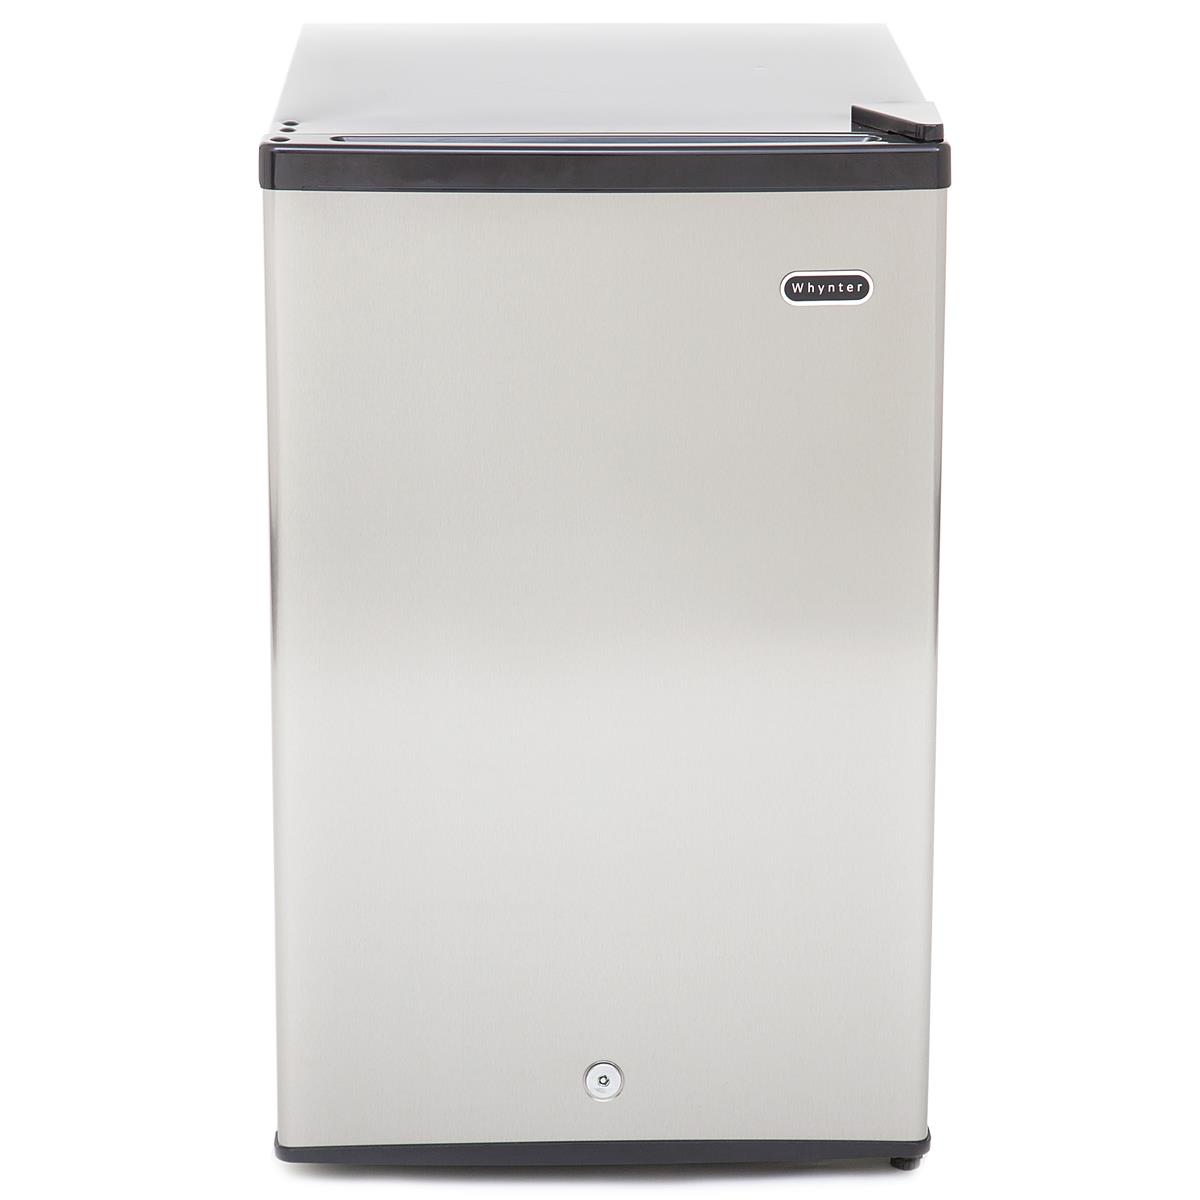 Kmart Freezer Whynter Cuf 210ss 2 1 Cu Ft Energy Star Stainless Steel